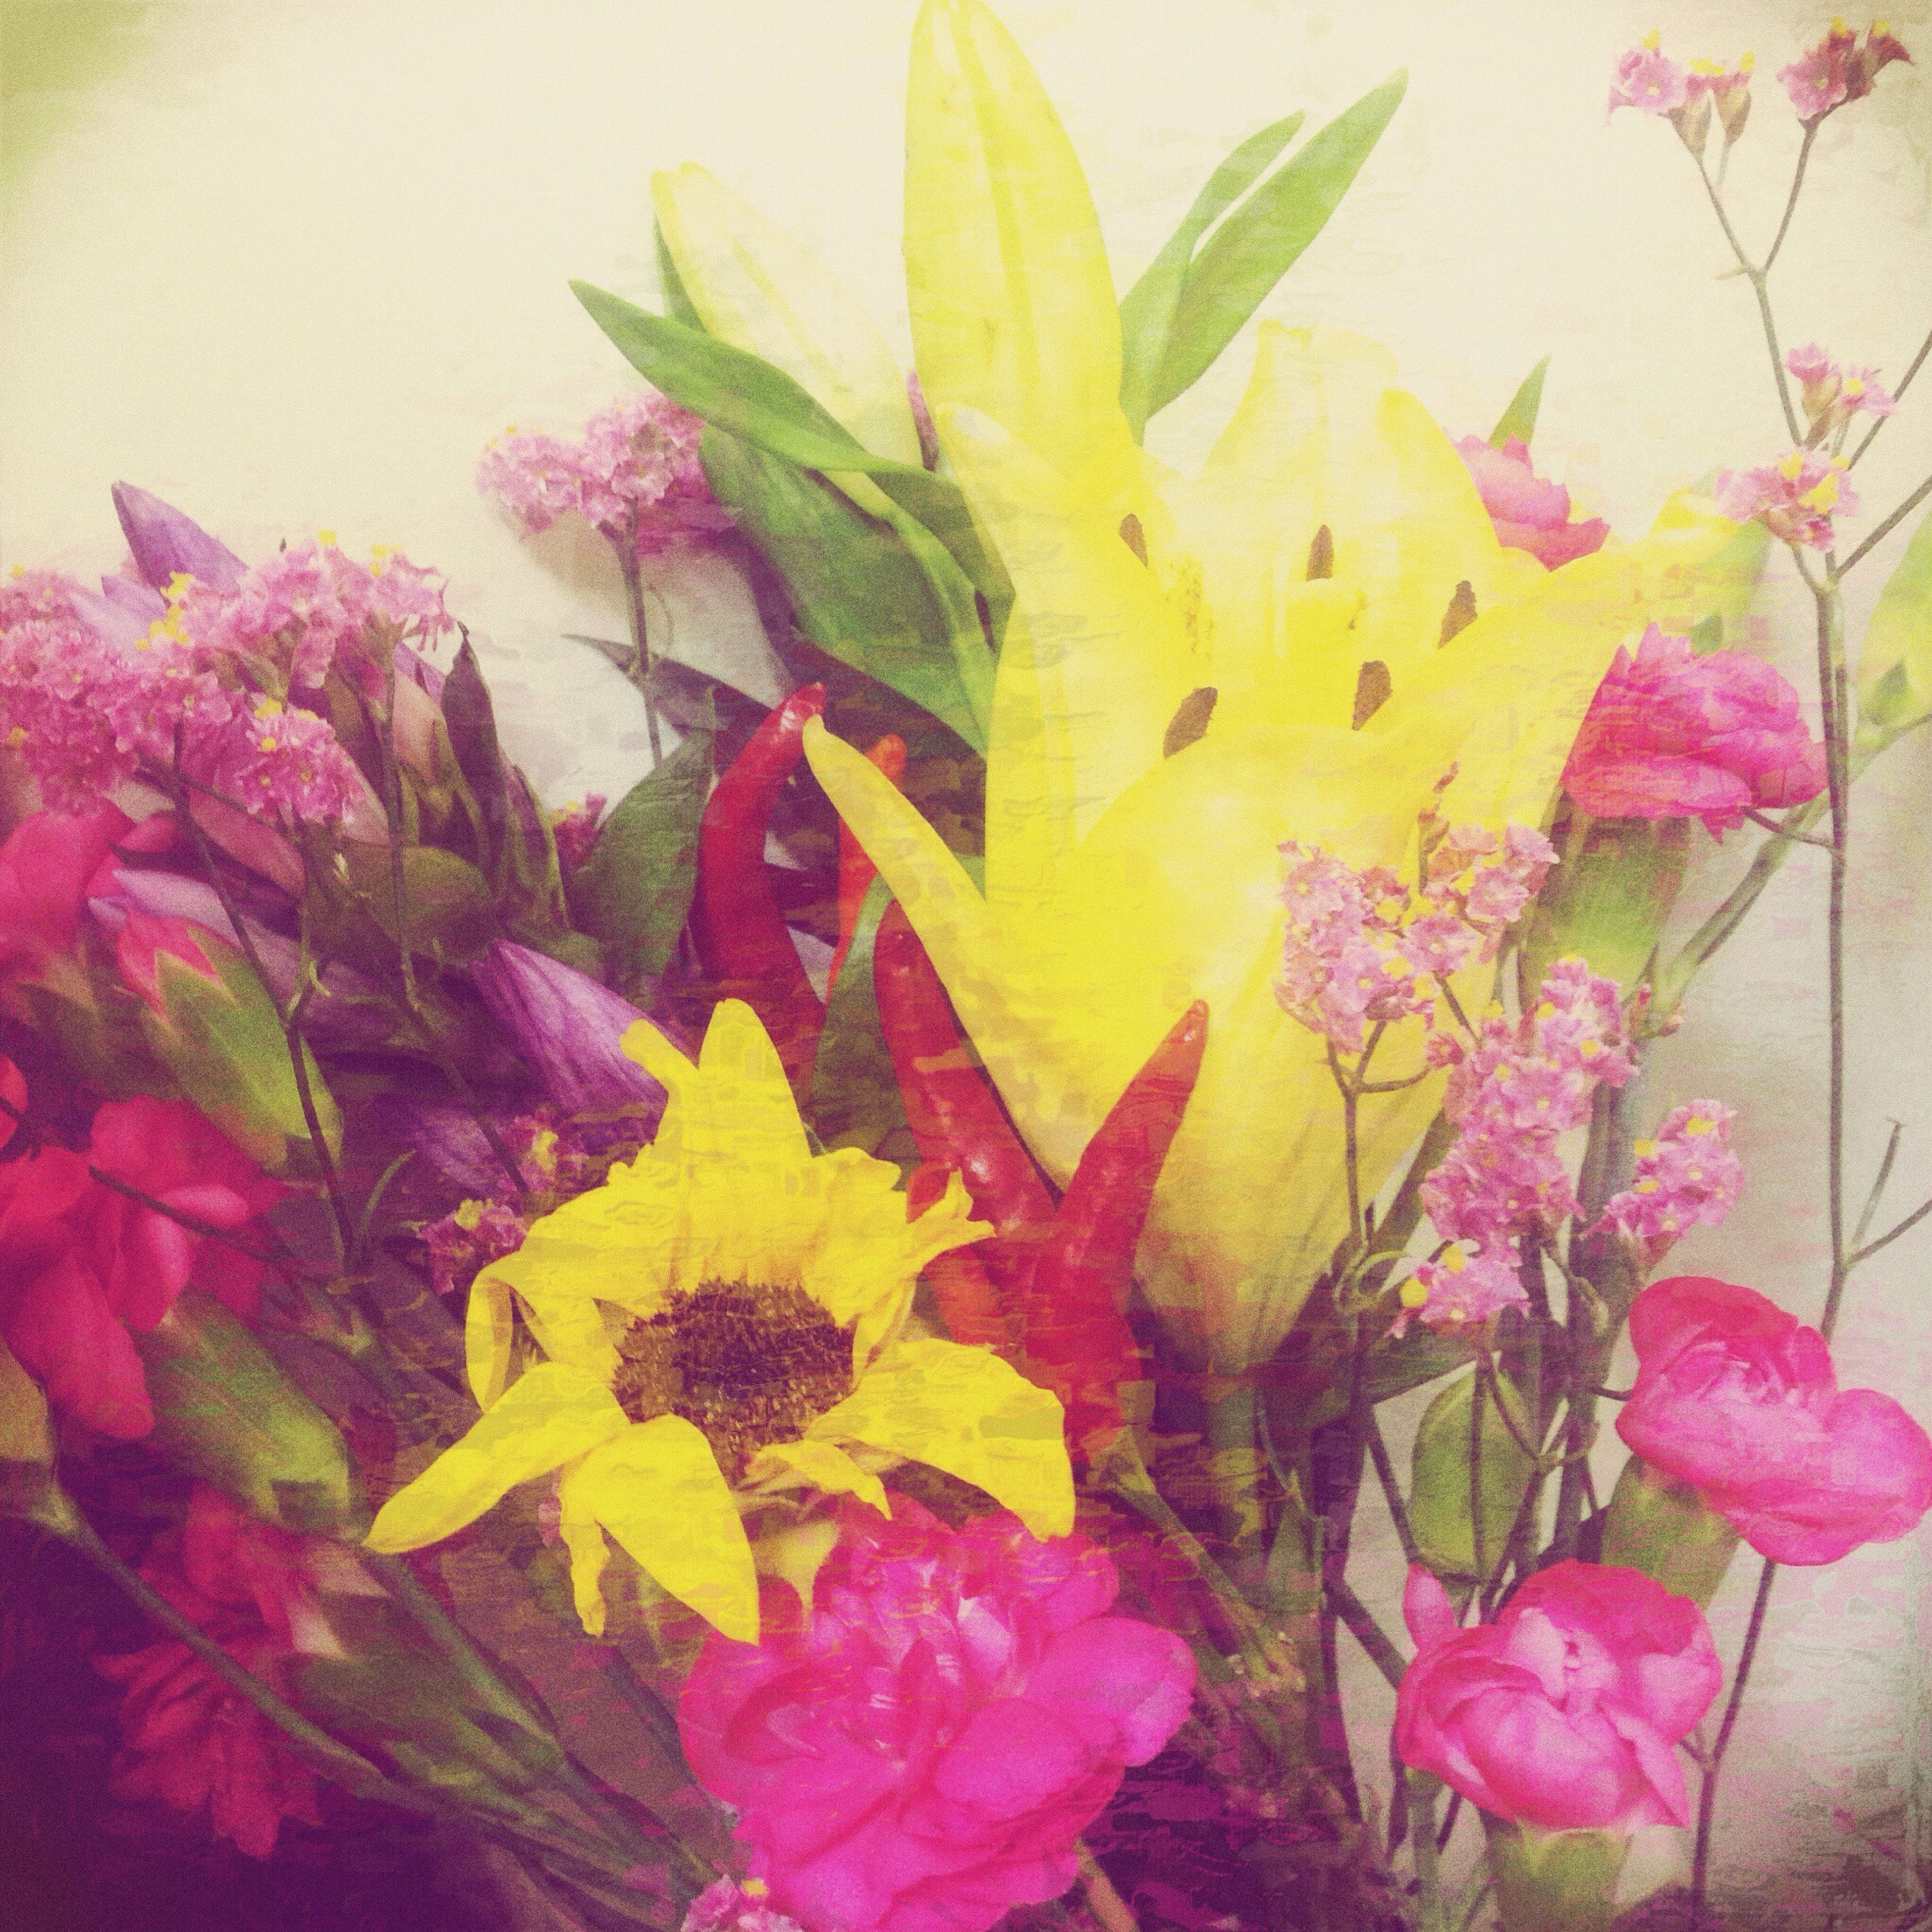 flower, fragility, petal, leaf, freshness, pink color, beauty in nature, growth, flower head, plant, nature, yellow, close-up, multi colored, wall - building feature, blooming, no people, indoors, high angle view, day